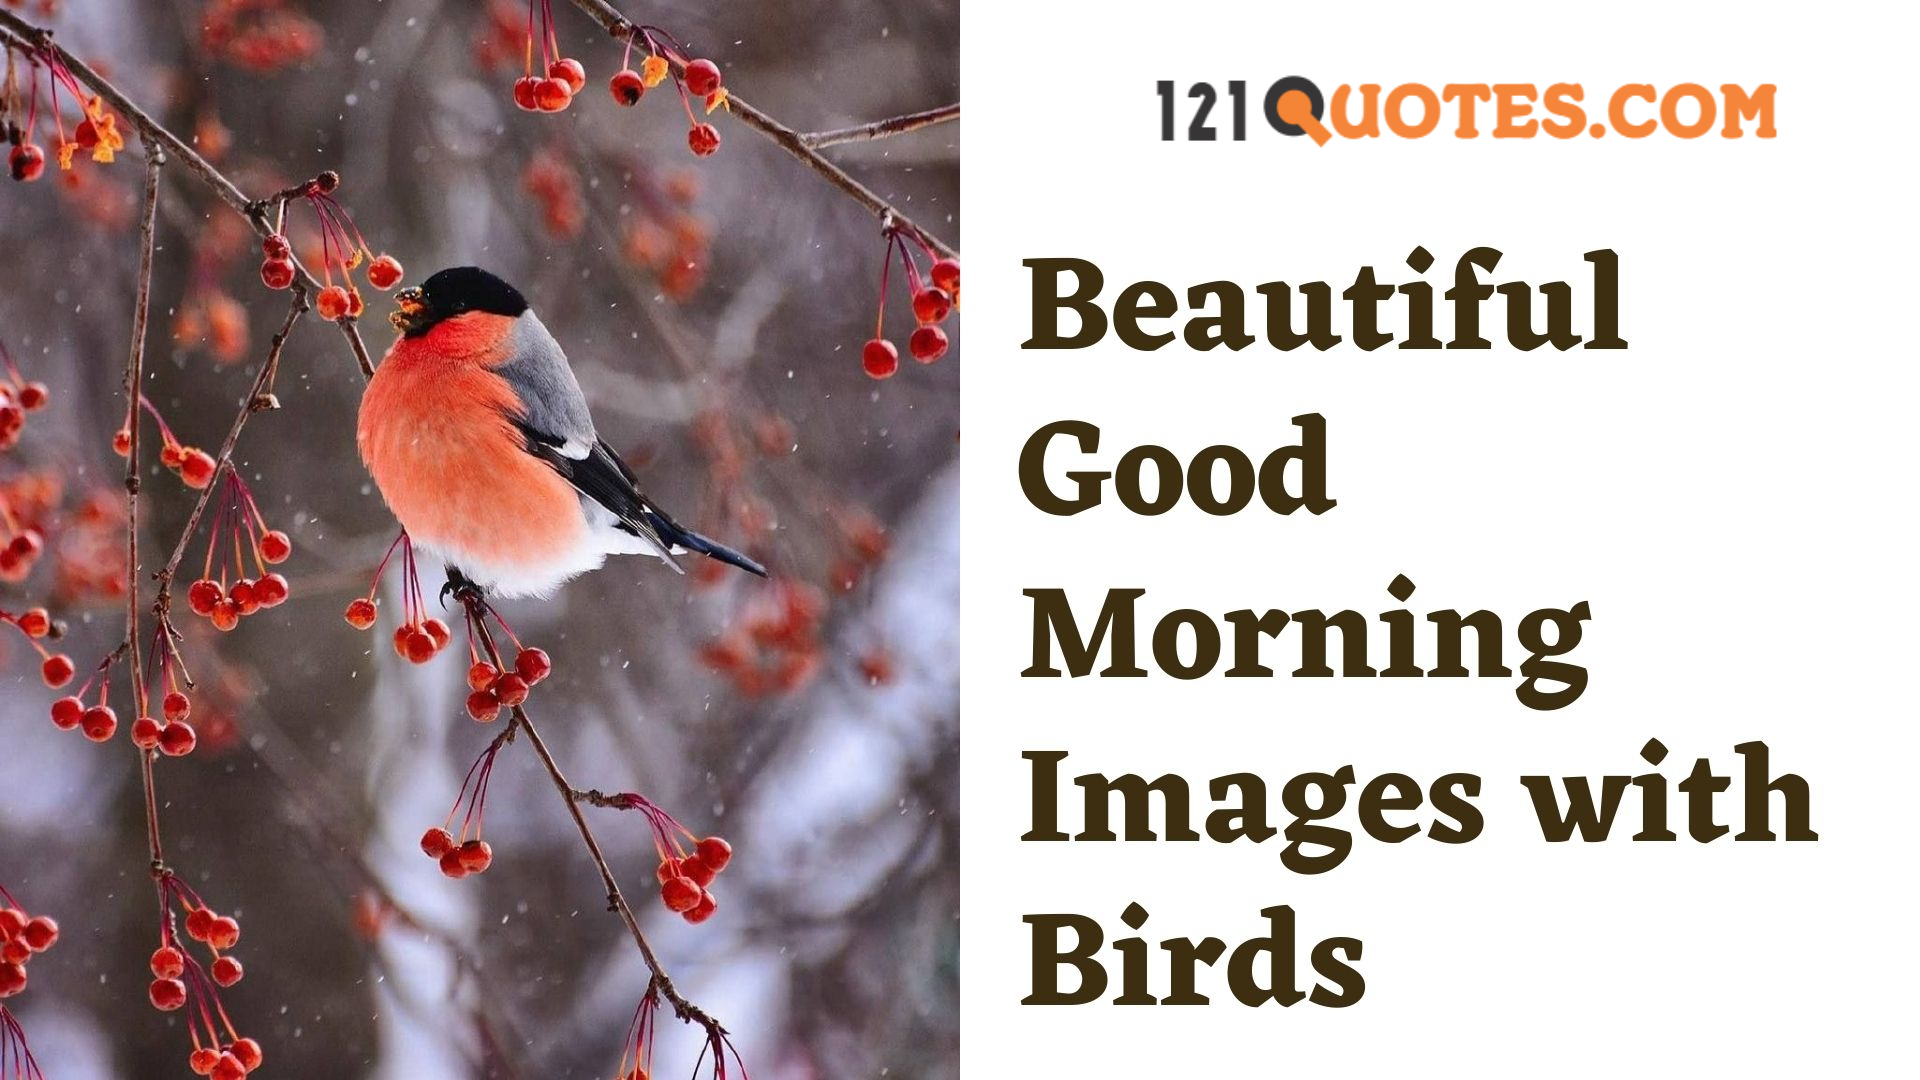 Beautiful Good Morning Images with Birds